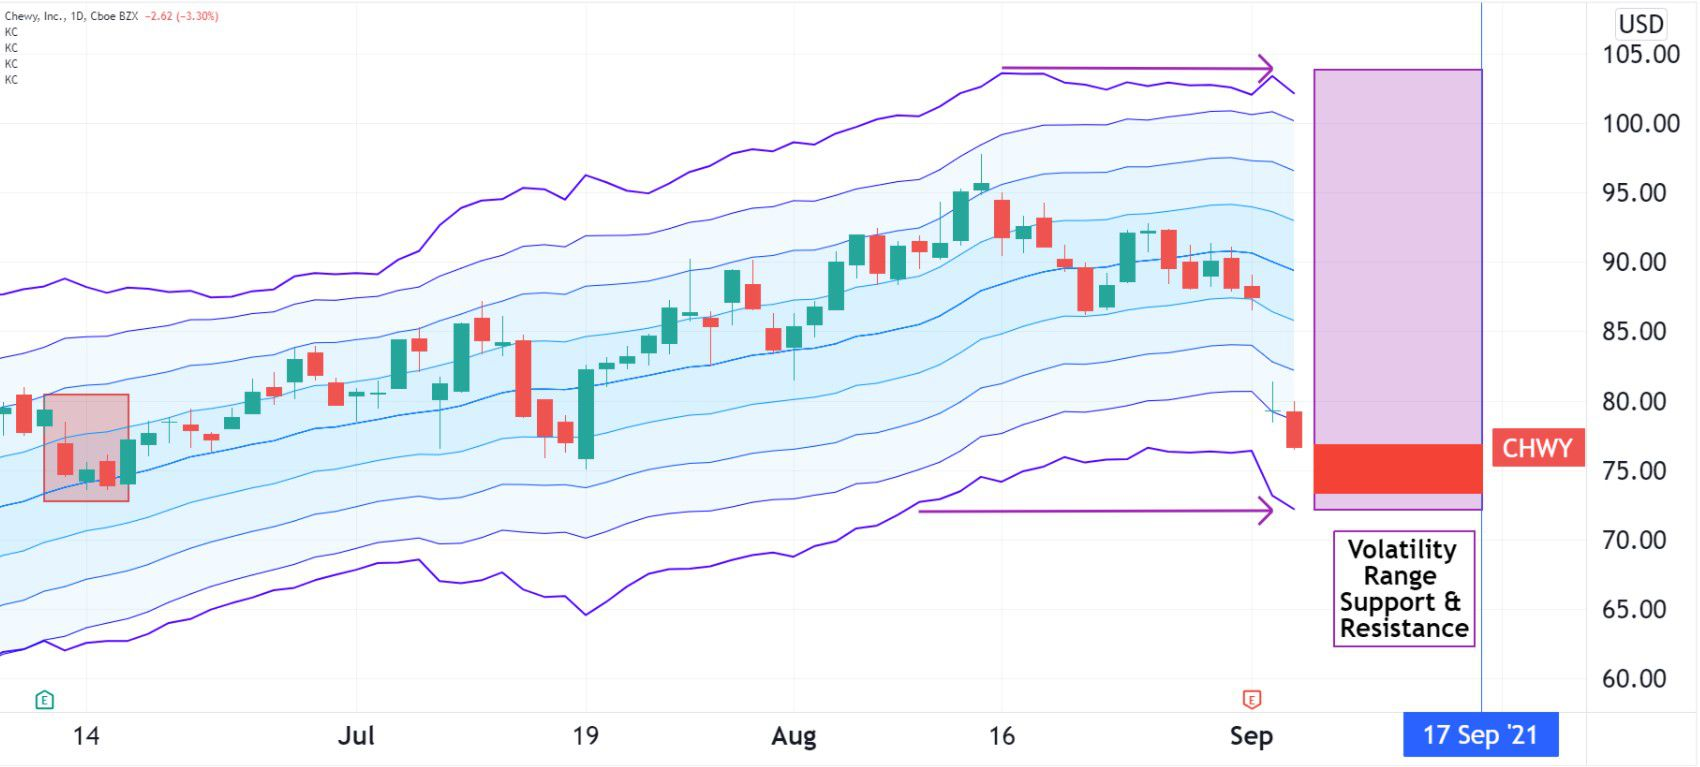 Volatility pattern for Chewy (CHW)